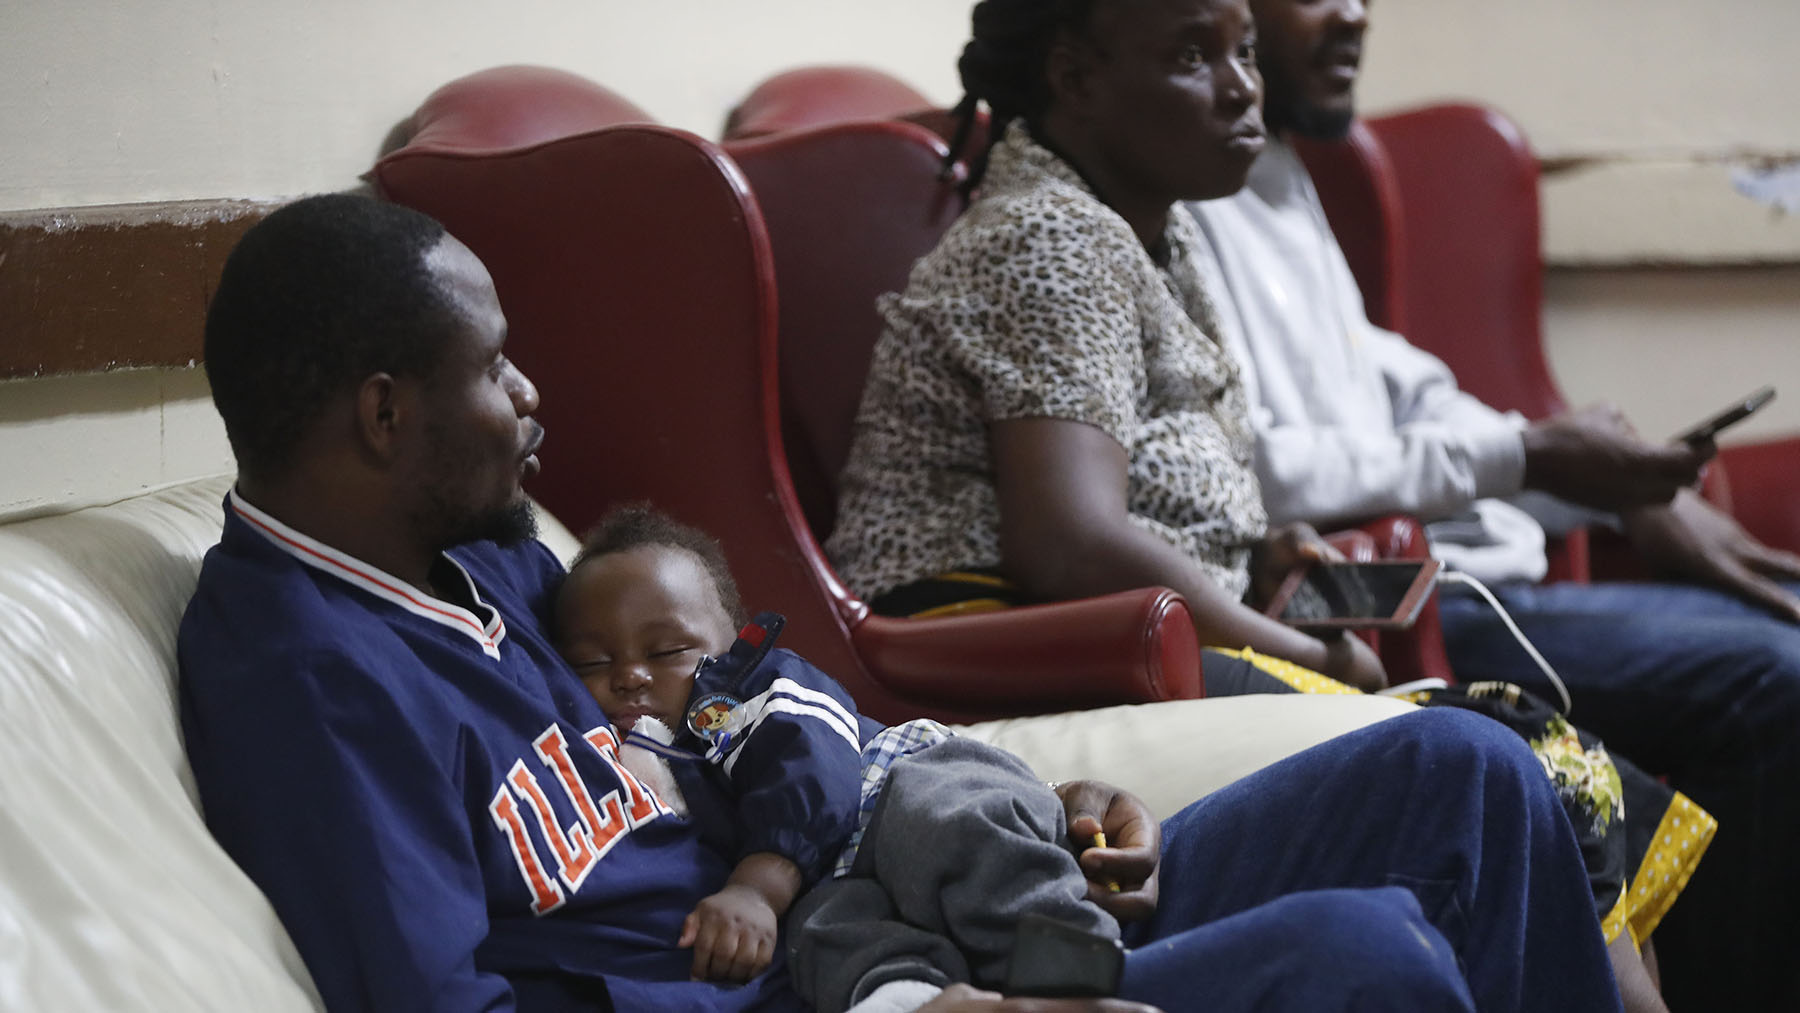 Nearly 100 Congolese asylum seekers released from the U.S. southern border arrived in mid-June at Vive Shelter, operated by Jericho Road Health Center in Buffalo, New York. The health center and shelter have been working to meet health needs of new arrivals. Here, shelter residents rest at Vive Shelter on June 17, 2019.  (Mark Mulville/Buffalo News)